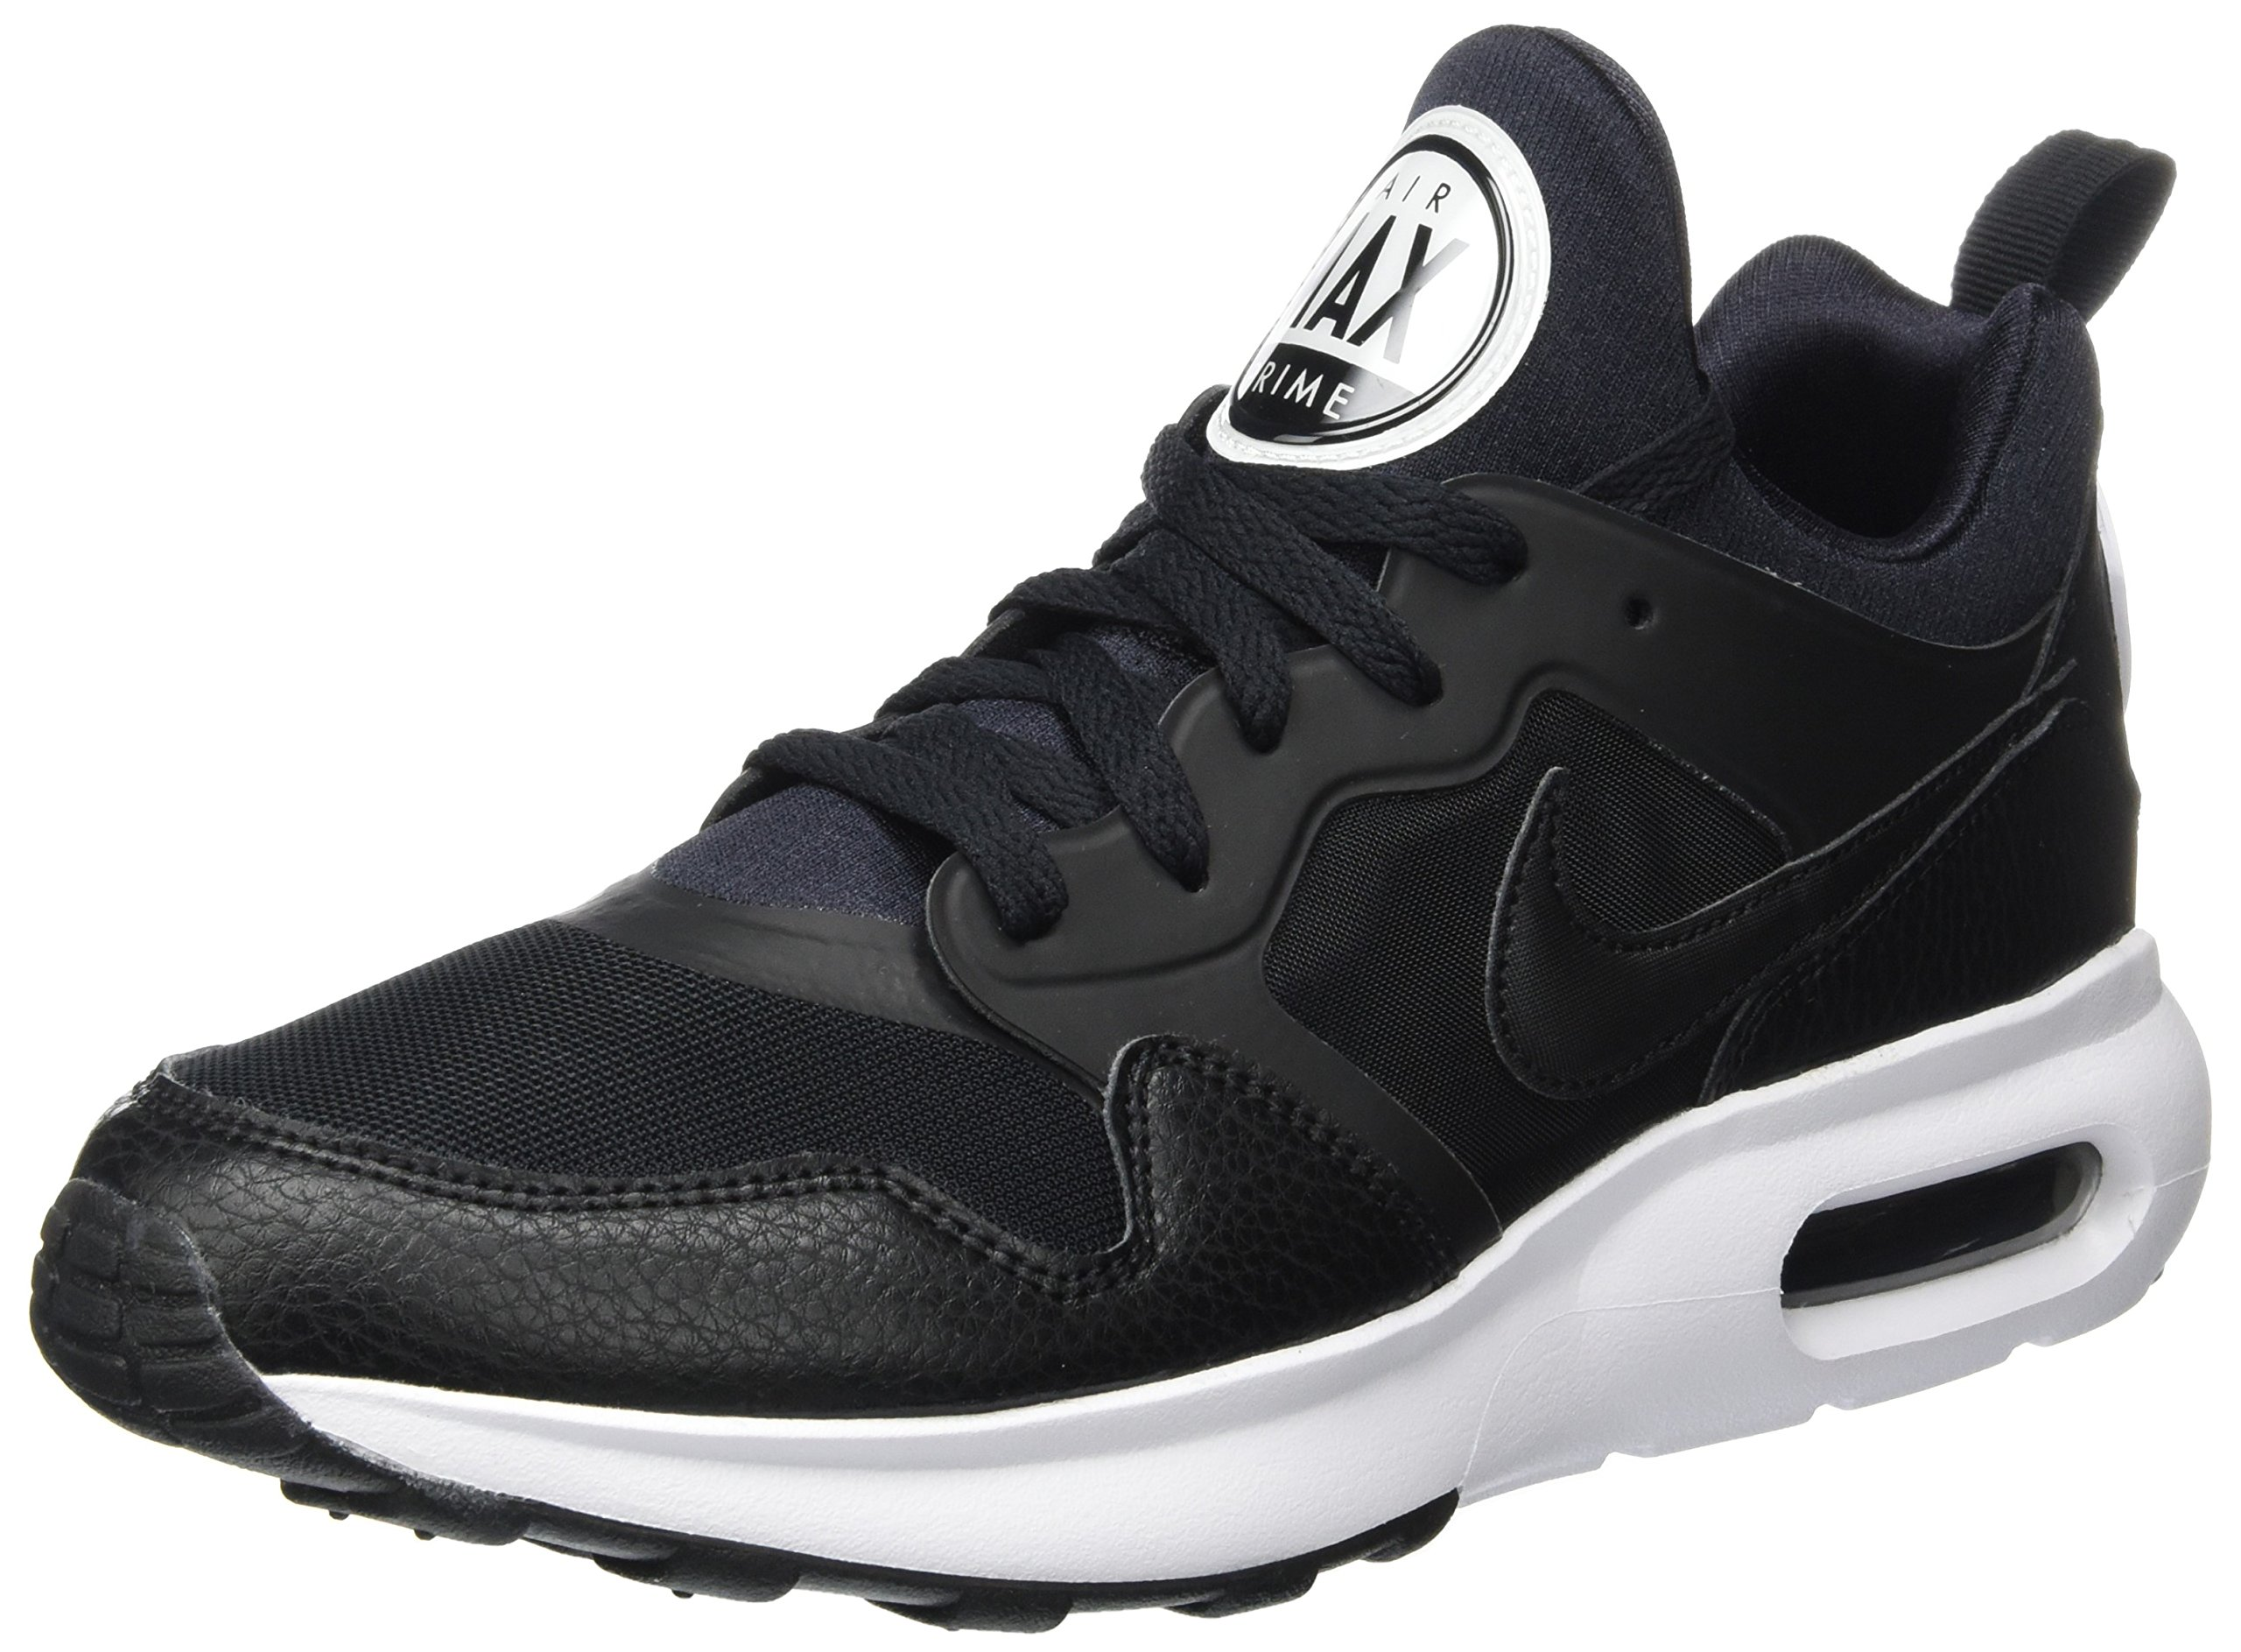 NIKE Mens Air Max Prime Running Shoes Black/White 876068-001 Size 10